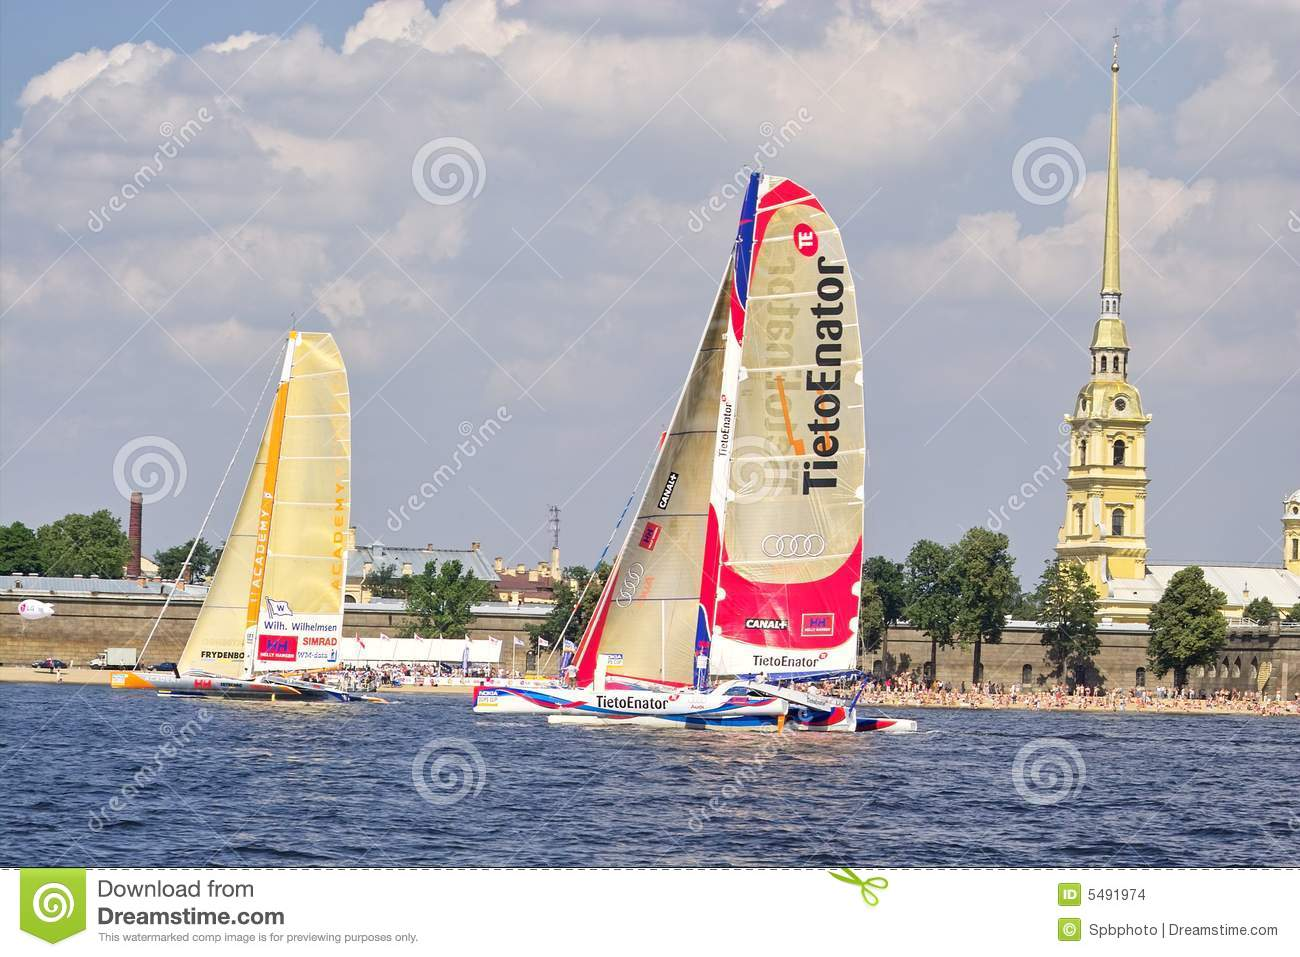 St petersburg city race neva river russia 16th of july 2005